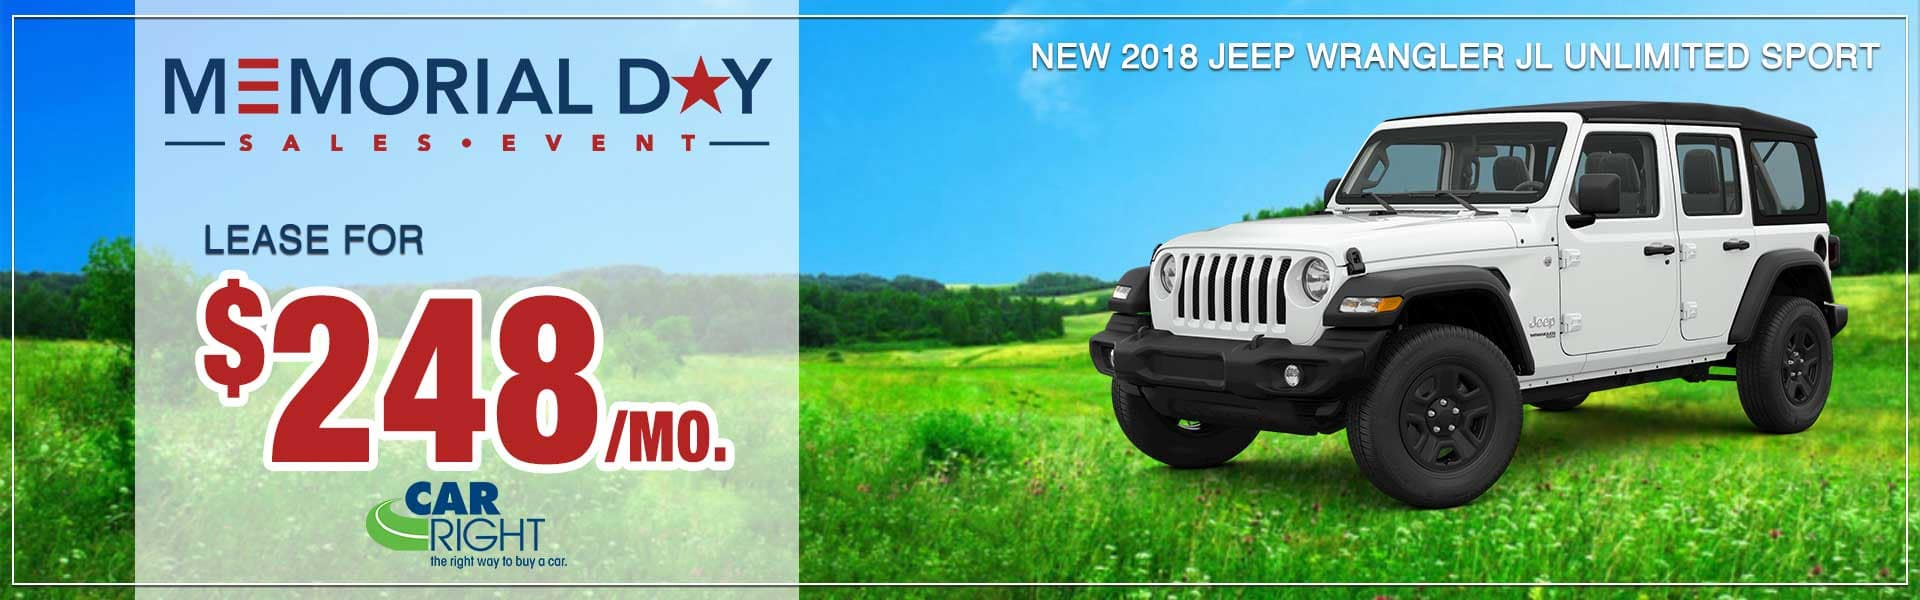 x2780-2018-jeep-wrangler-jl-sport-600x400 Jeep celebration event Chrysler Pacifica blockbuster sales event dodge performance days bigger things sales event Memorial Day sales event carright auto moon township Pittsburgh new vehicle specials lease specials